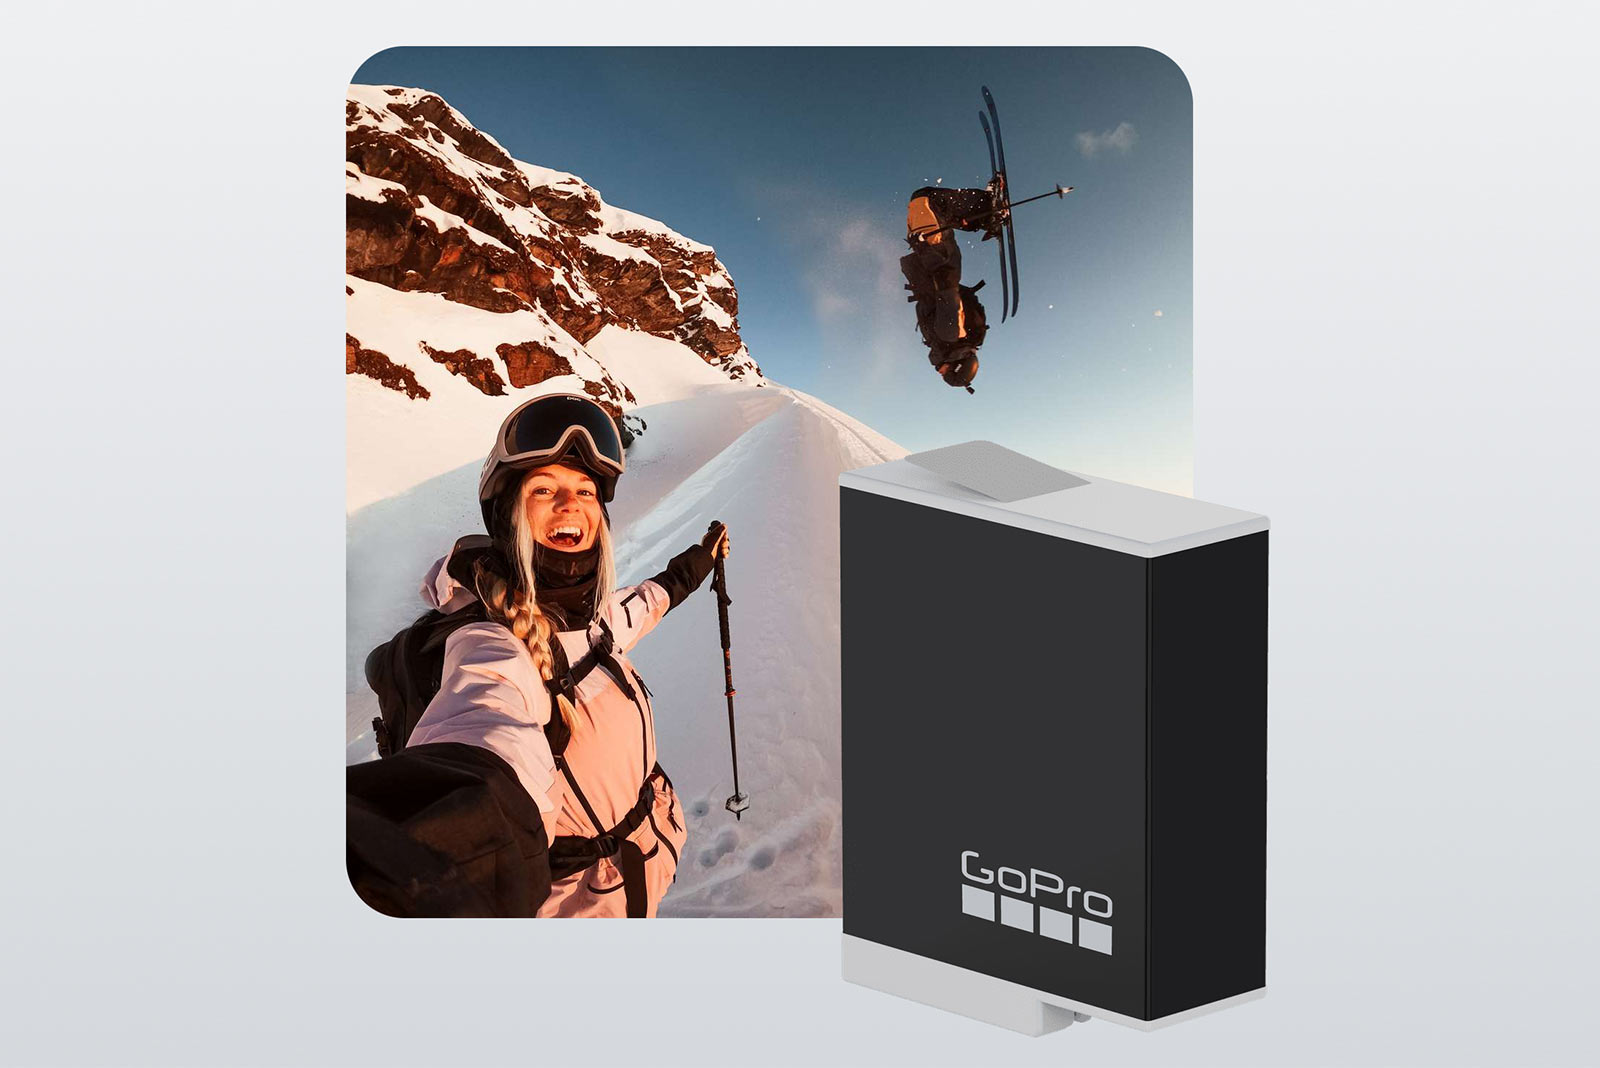 gopro enduro battery is a longer laster action camera battery